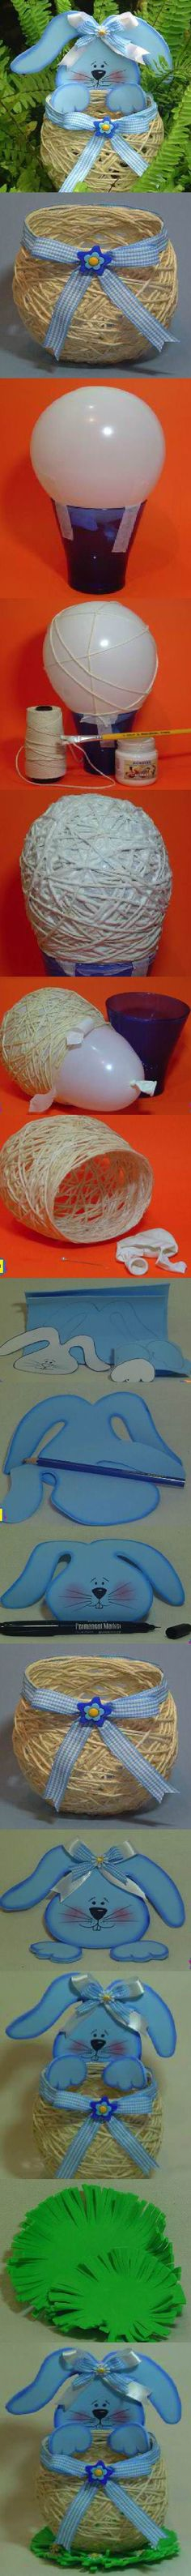 DIY Yarn String Easter Basket .: